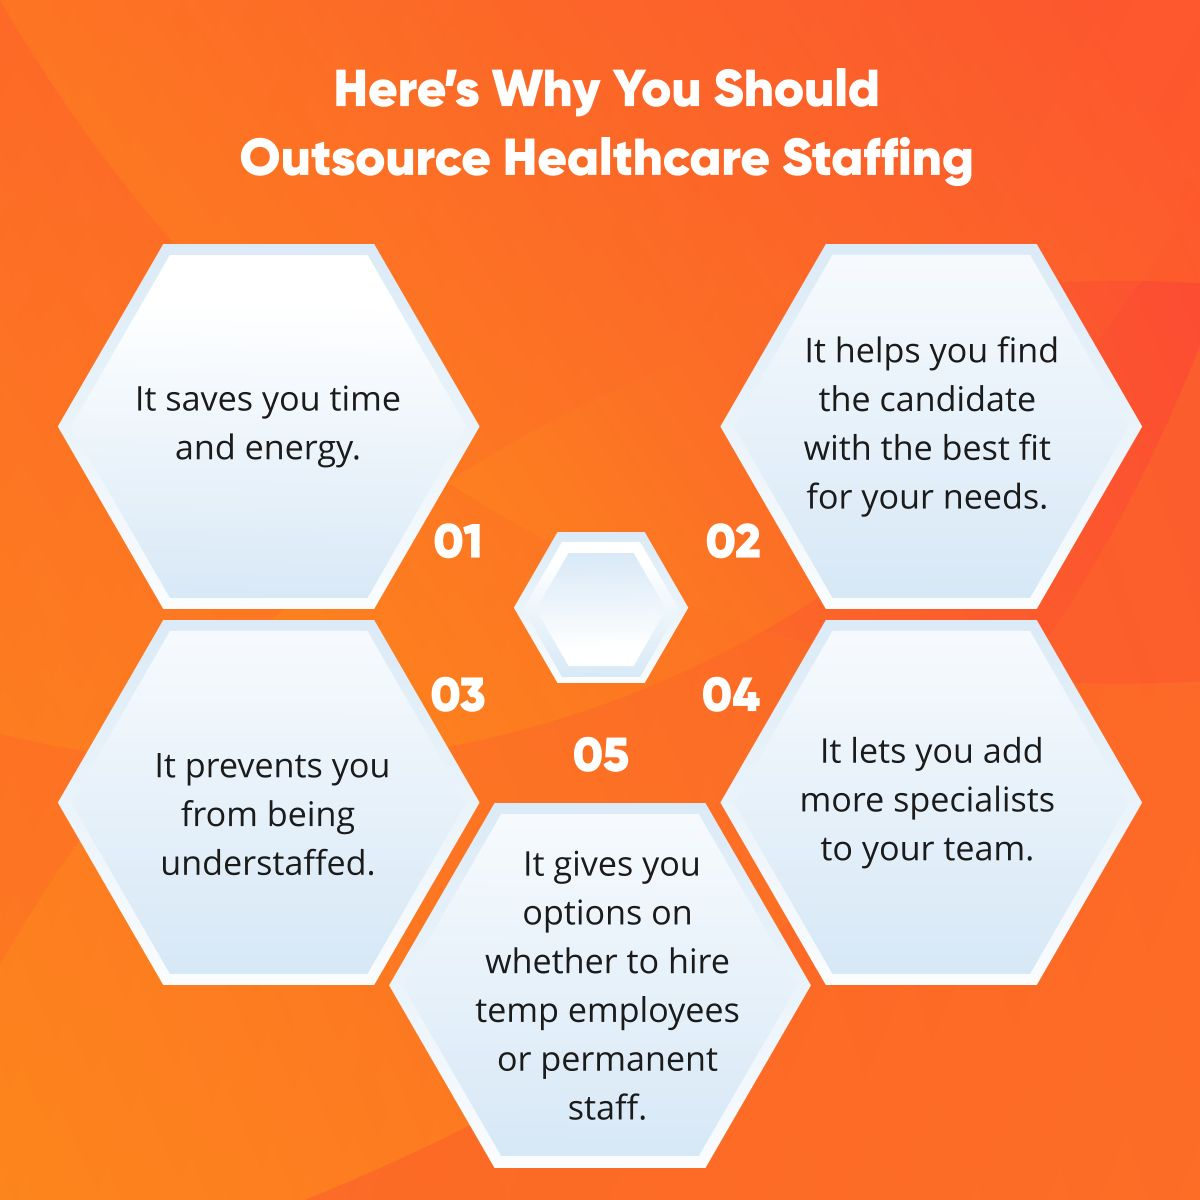 Here's Why You Should Outsource Healthcare Staffing